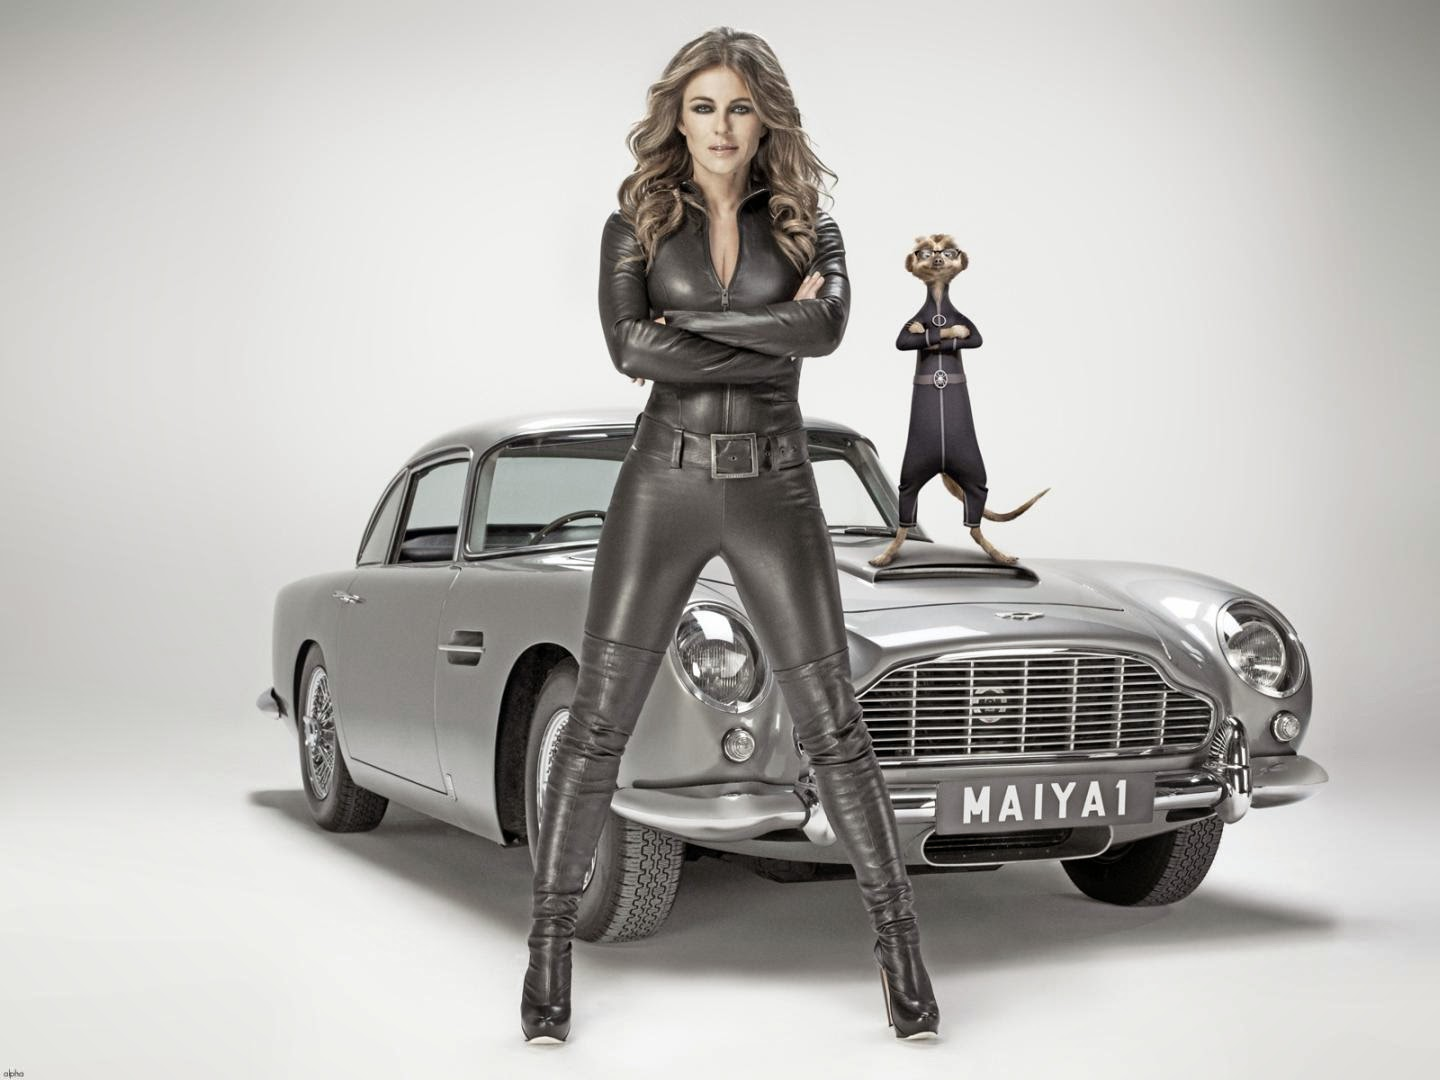 Elizabeth hurley hot leather catsuit wallpapers sexy leg